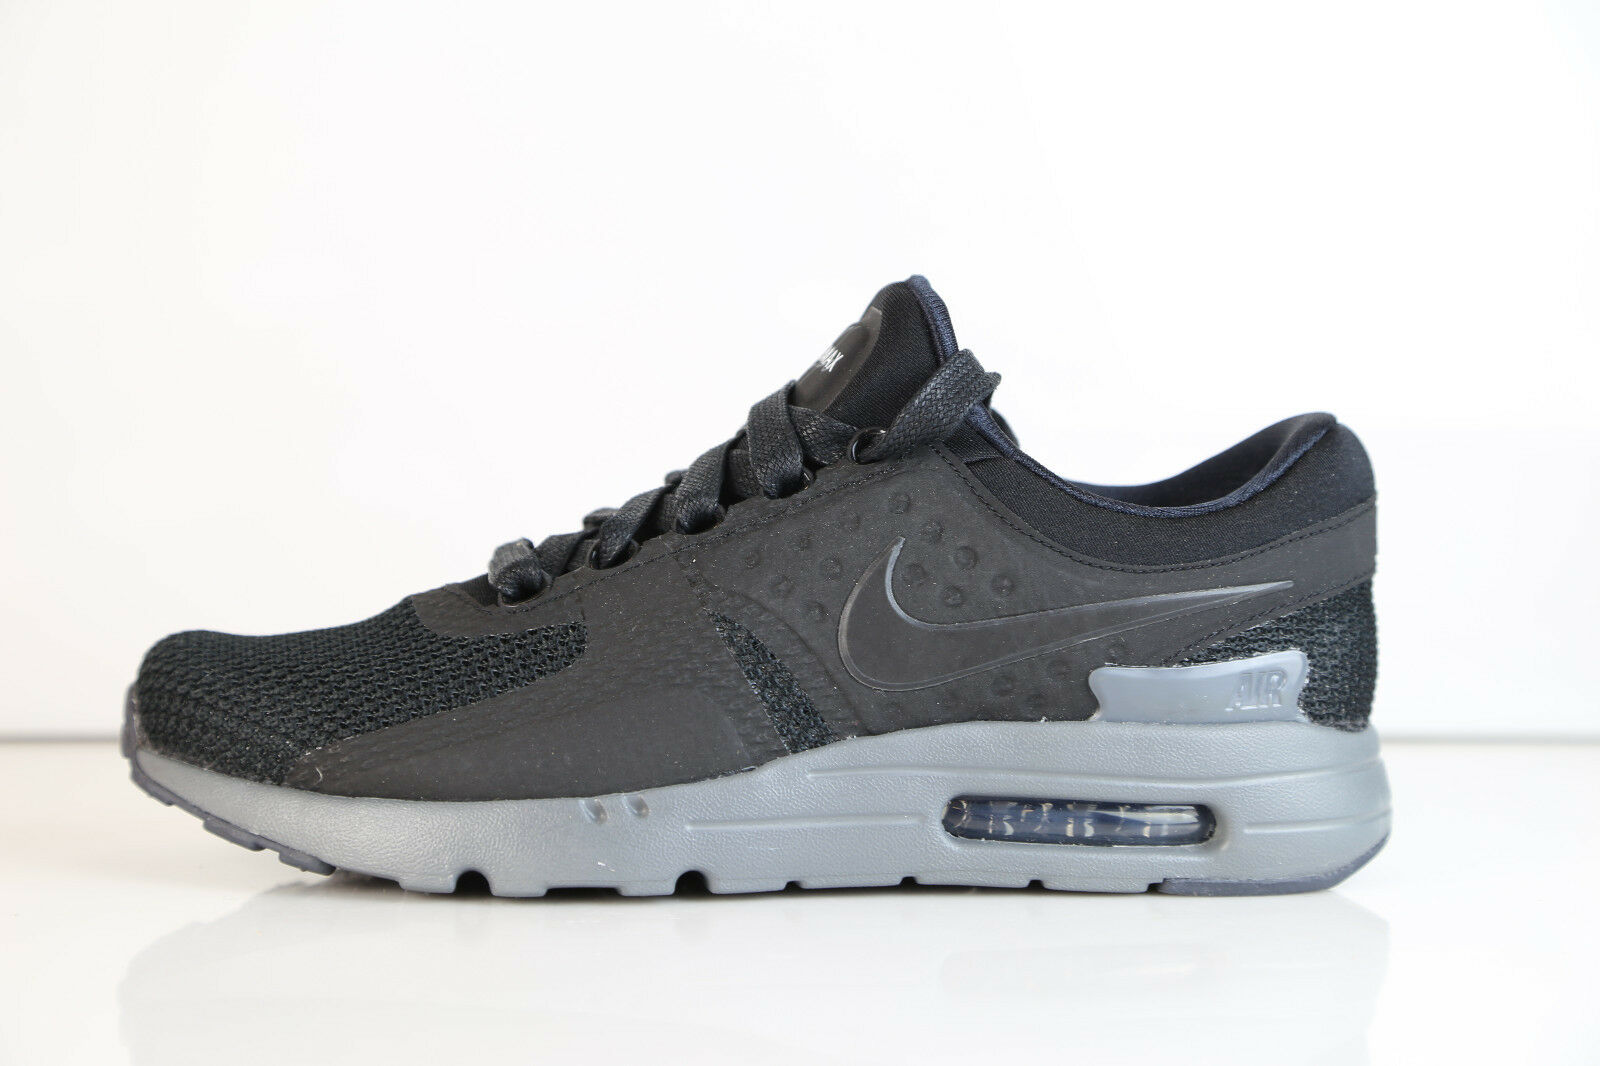 7672cbbfc5 Nike Max Zero Black Anthracite 789695-001 8-10 1 90 3 QS Air ...